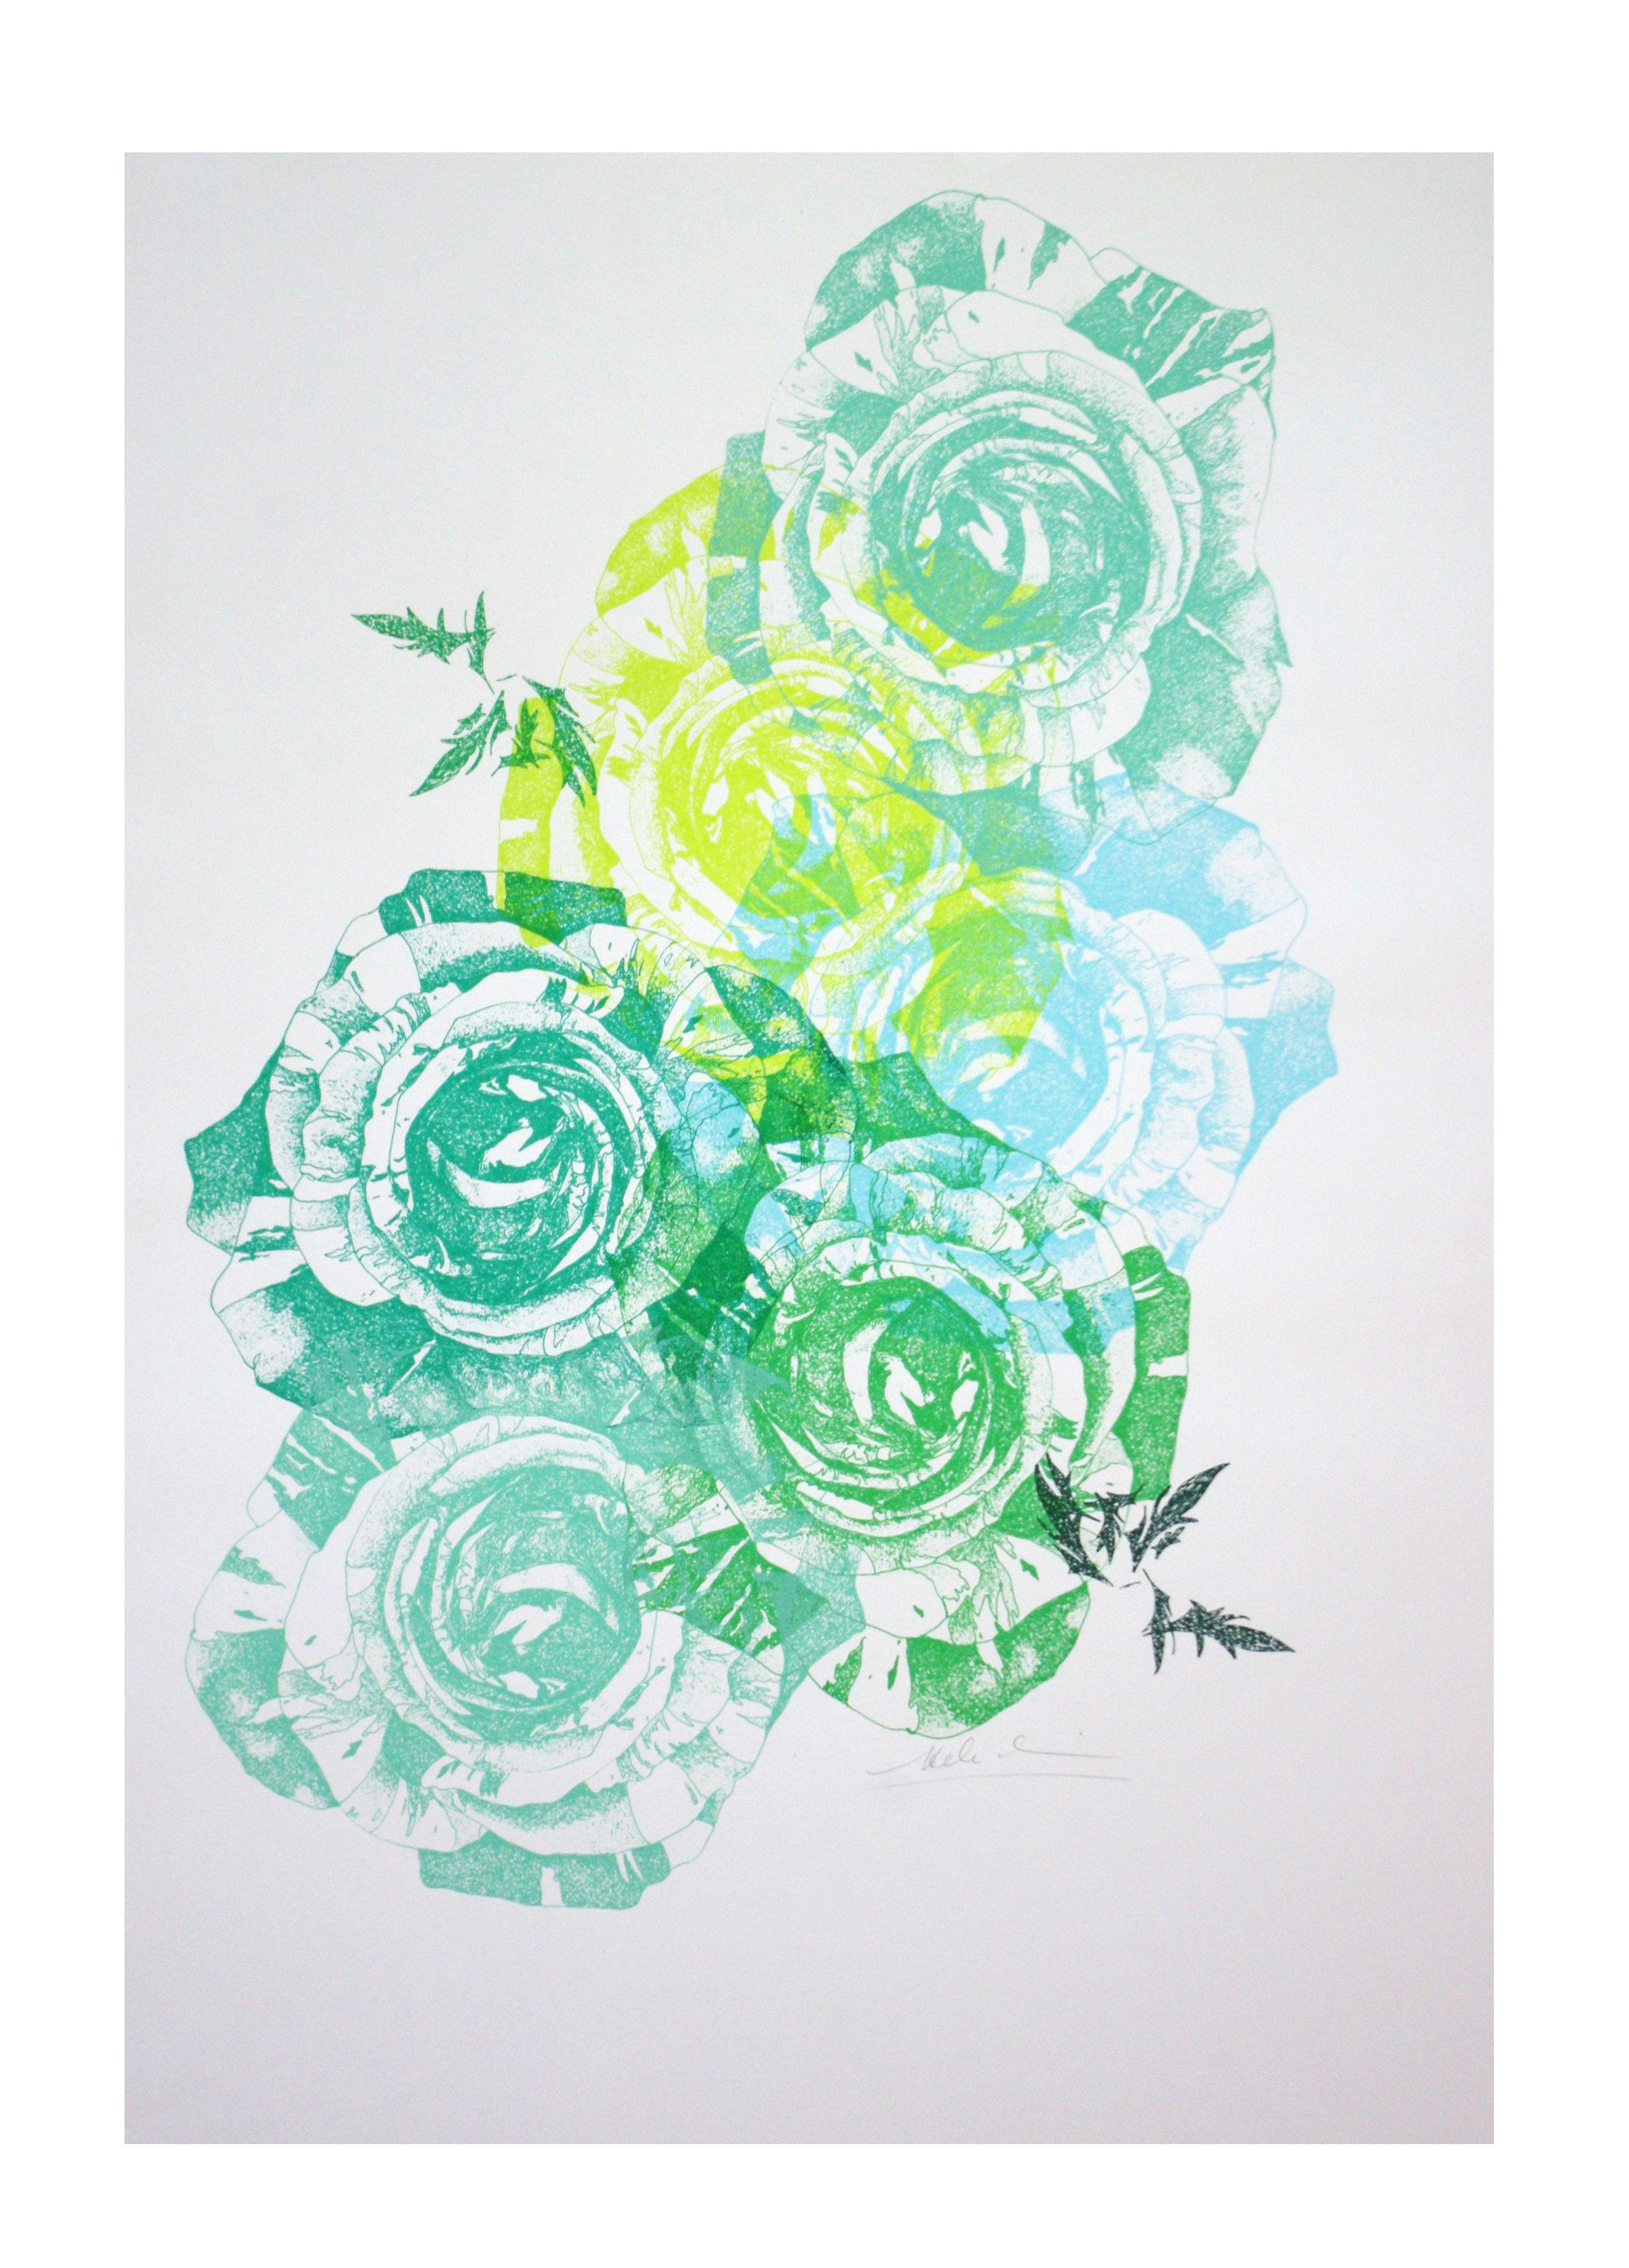 Multi Print In Several Colours Of Hand Drawn Screen Print